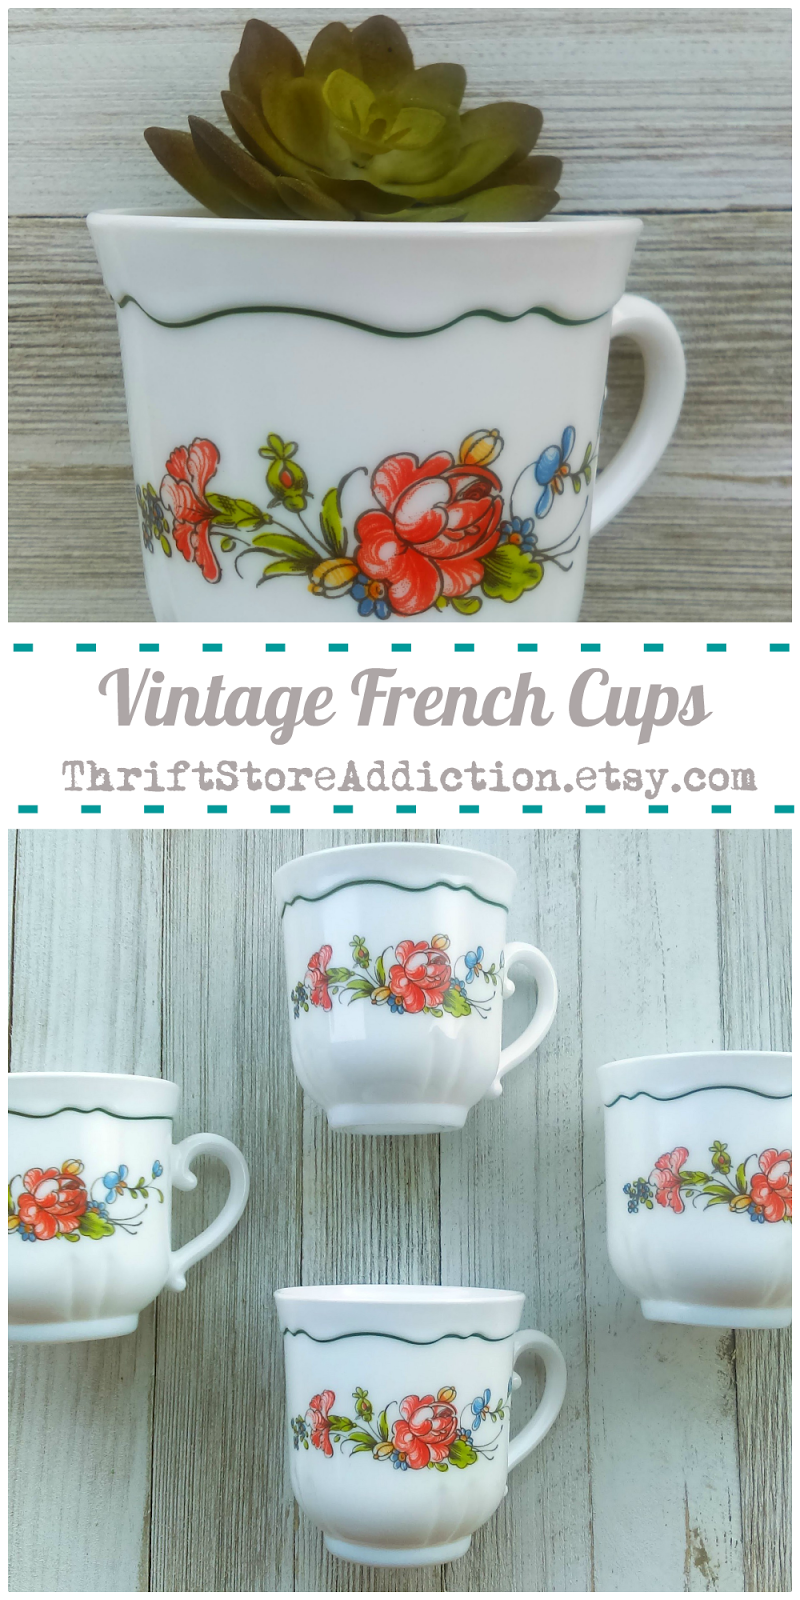 French cups available at thriftstoreaddiction.etsy.com